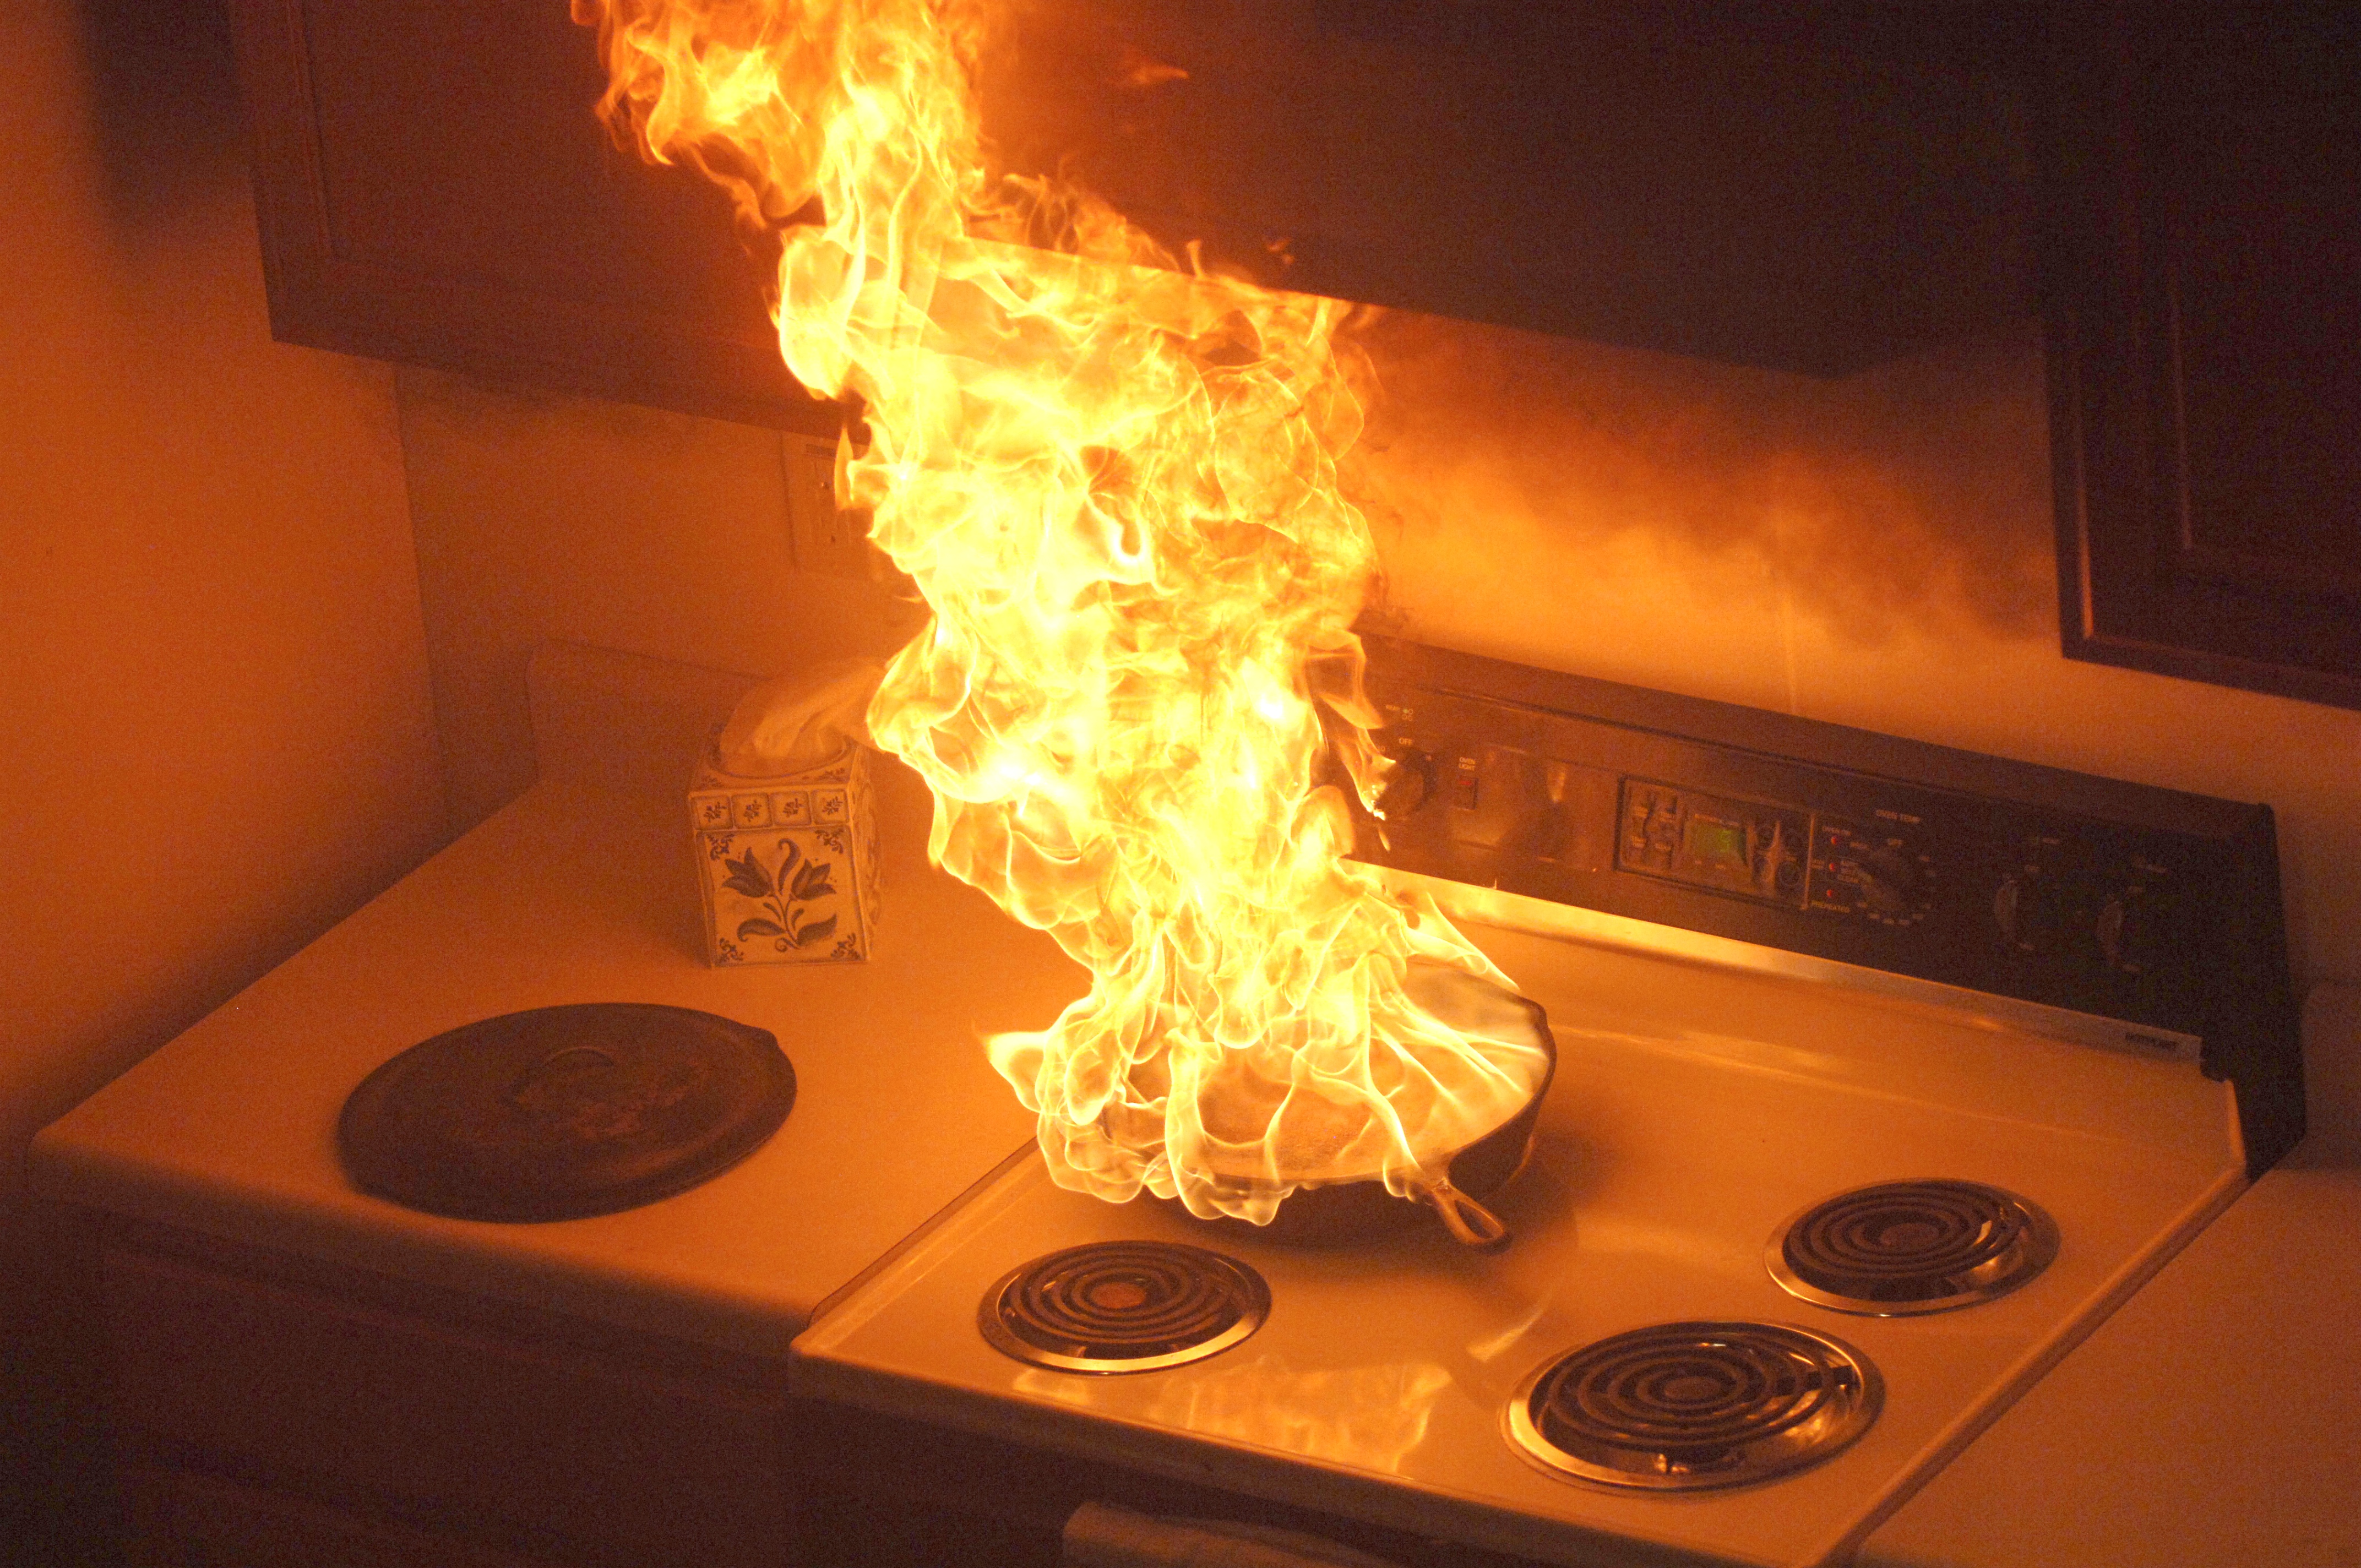 The main causes of fire in everyday life